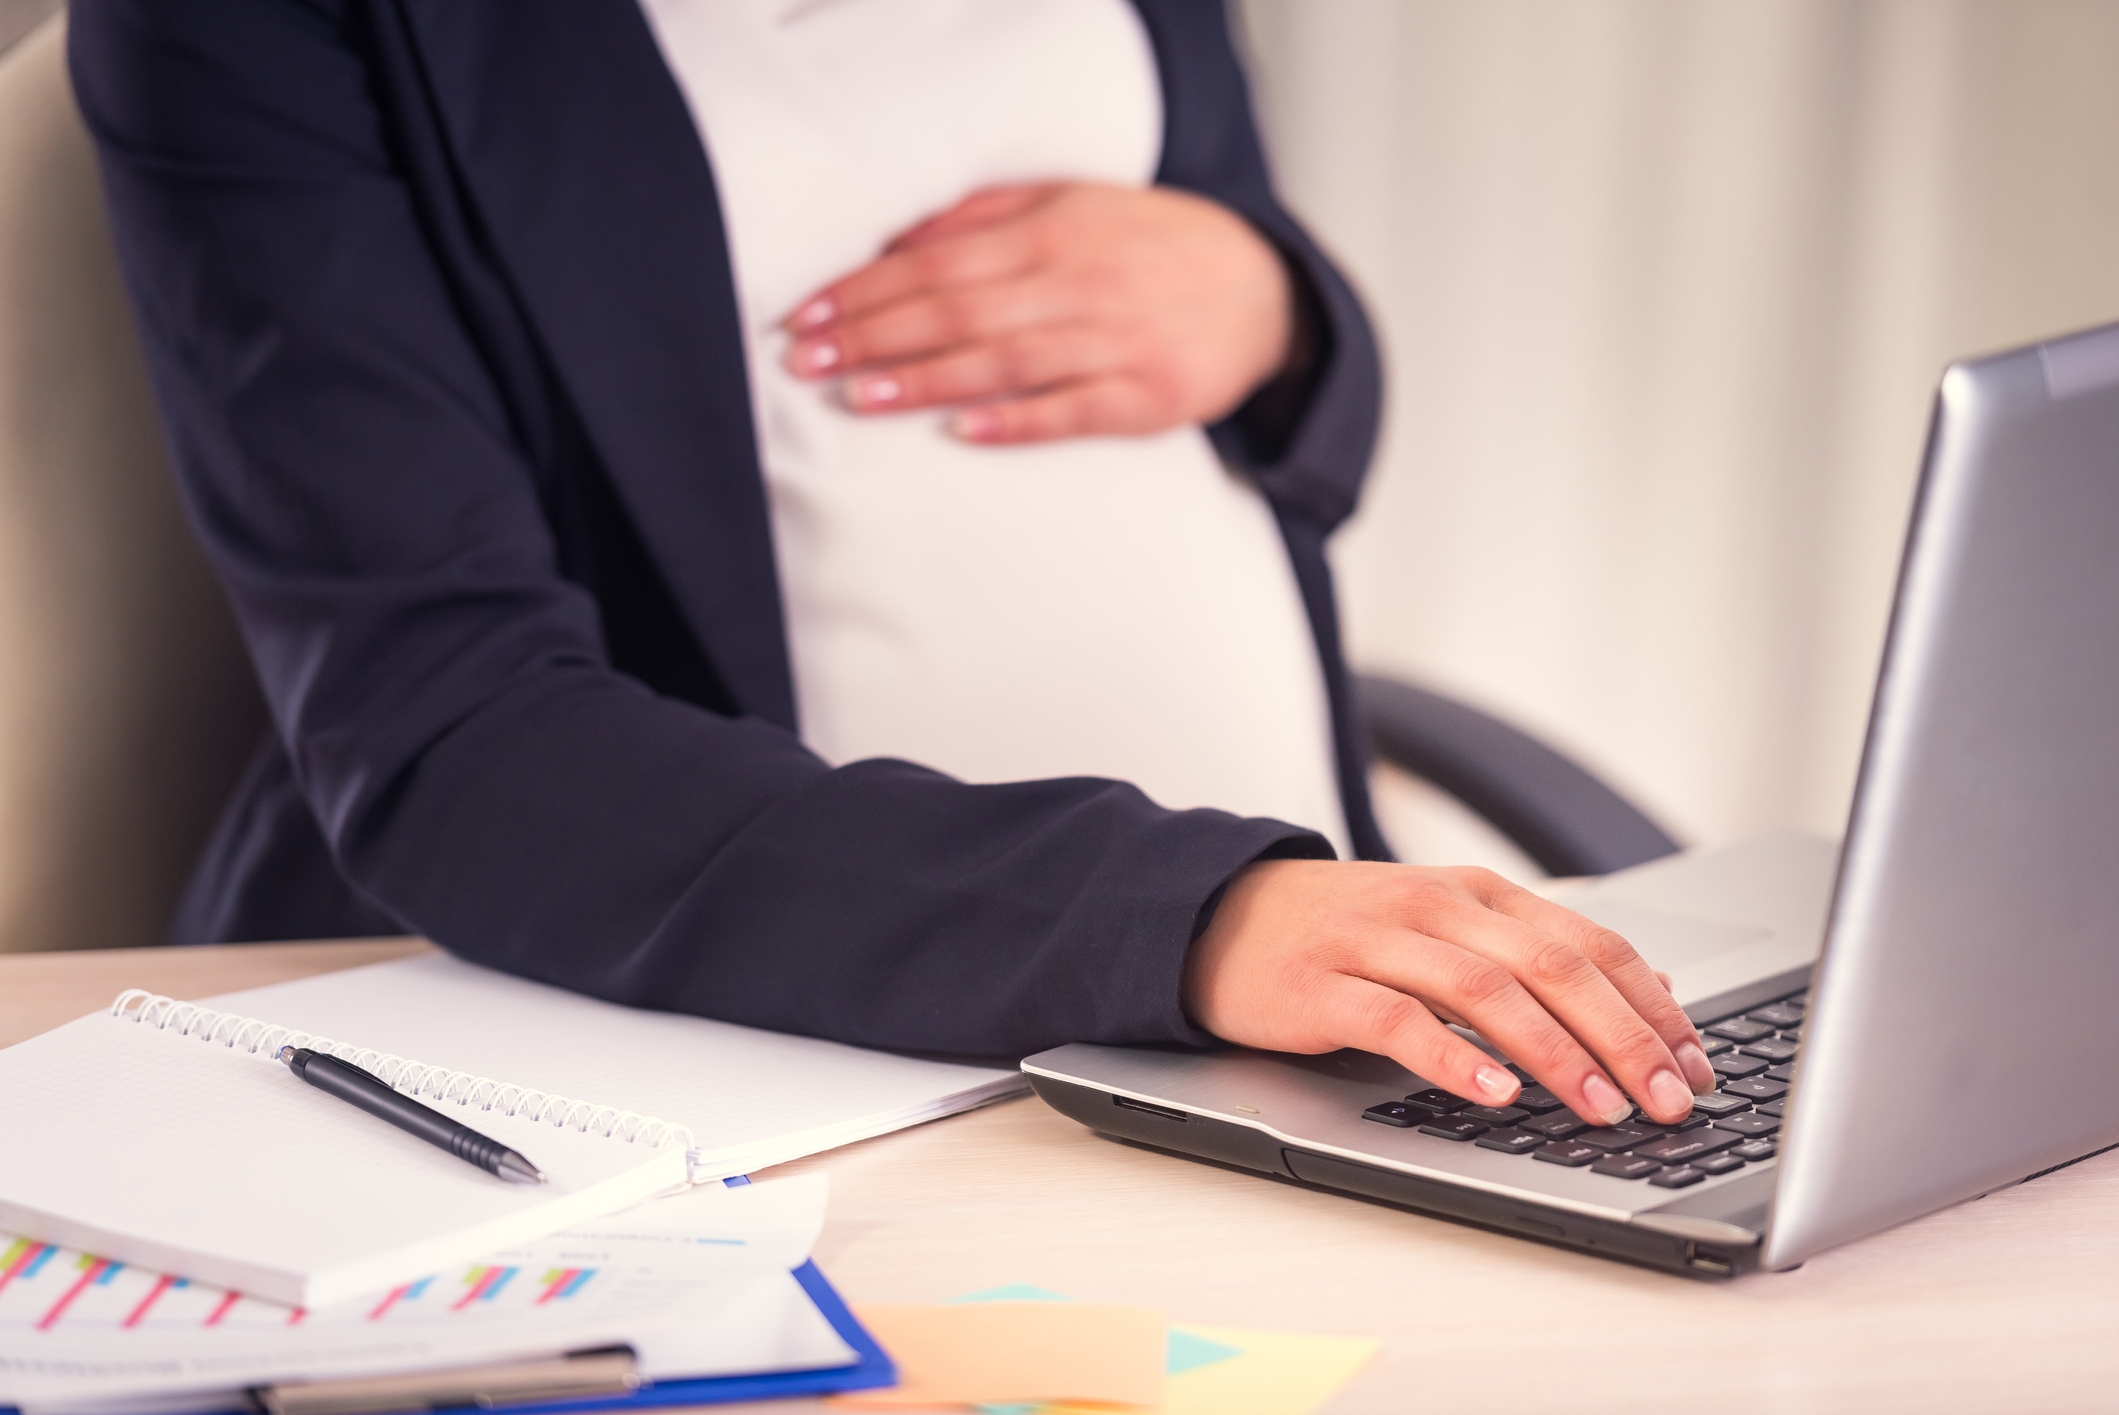 family leave, parental leave, maternity leave, working mom